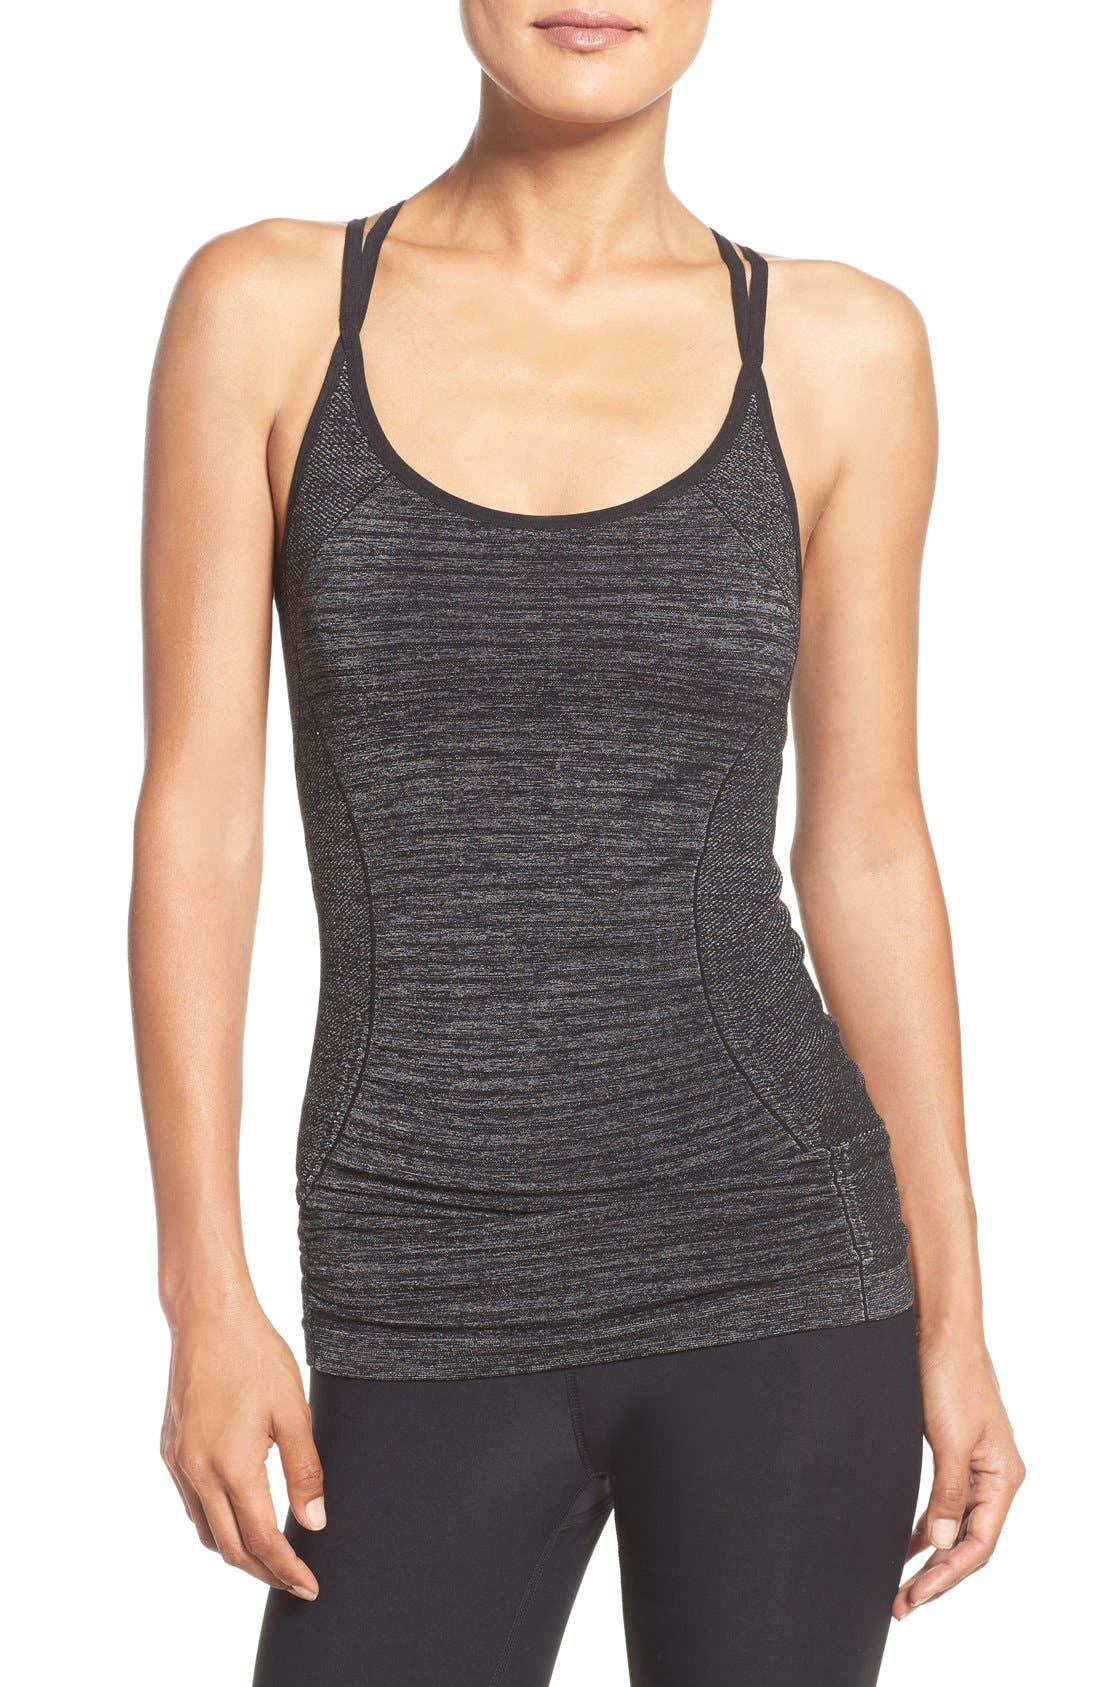 Alternate Image 1 Selected - Zella 'Stabilize' Seamless Racerback Camisole